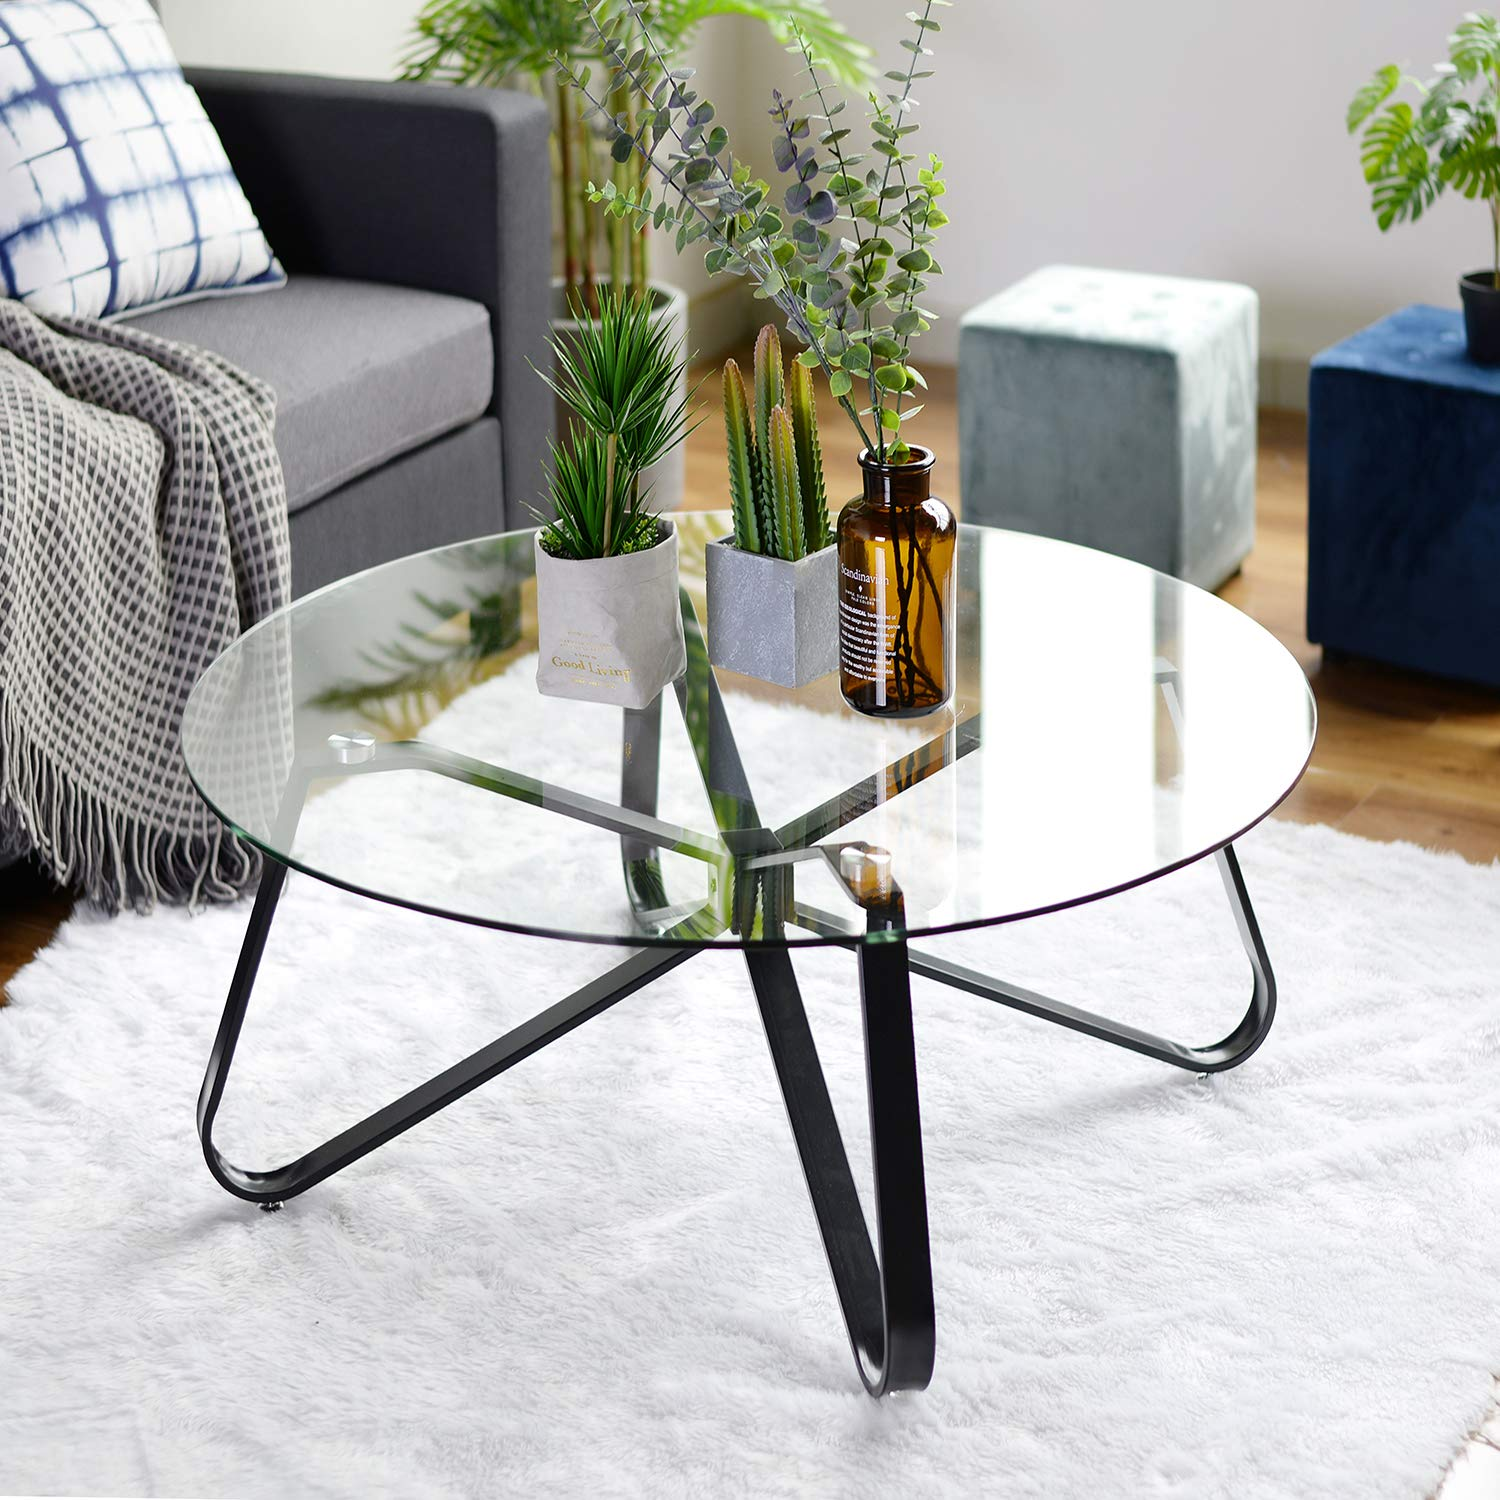 Round Tempered Glass Coffee Table Nordic Minimalist Sofa Table Modern Side Table End Table With Iron Black Base For Home Living Room Patio Garden 80cm 80cm 40cm Buy Online In Cayman Islands At Cayman Desertcart Com Productid